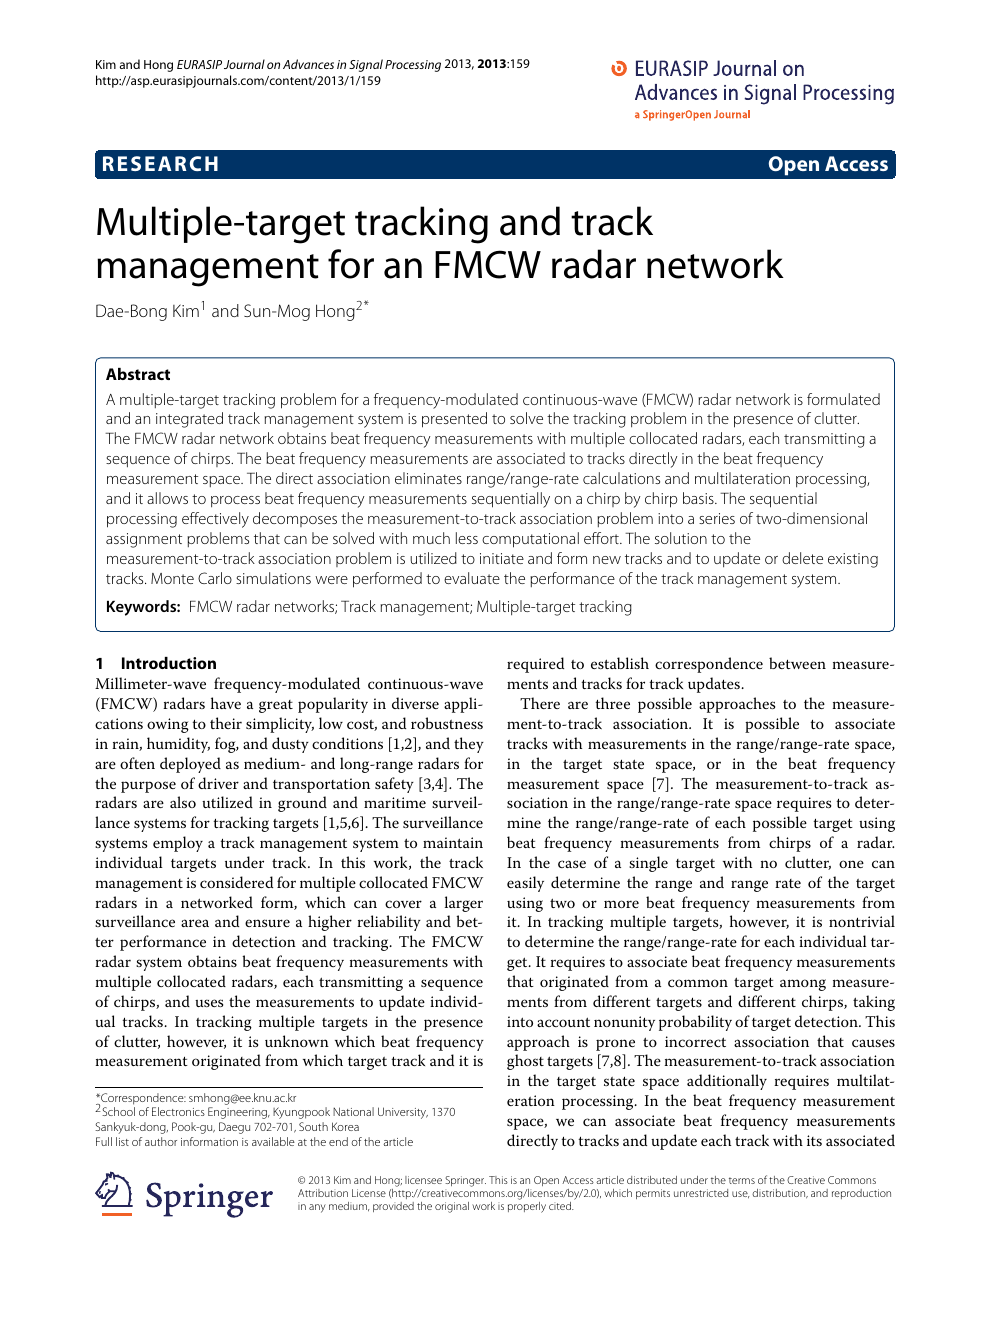 Multiple-target tracking and track management for an FMCW